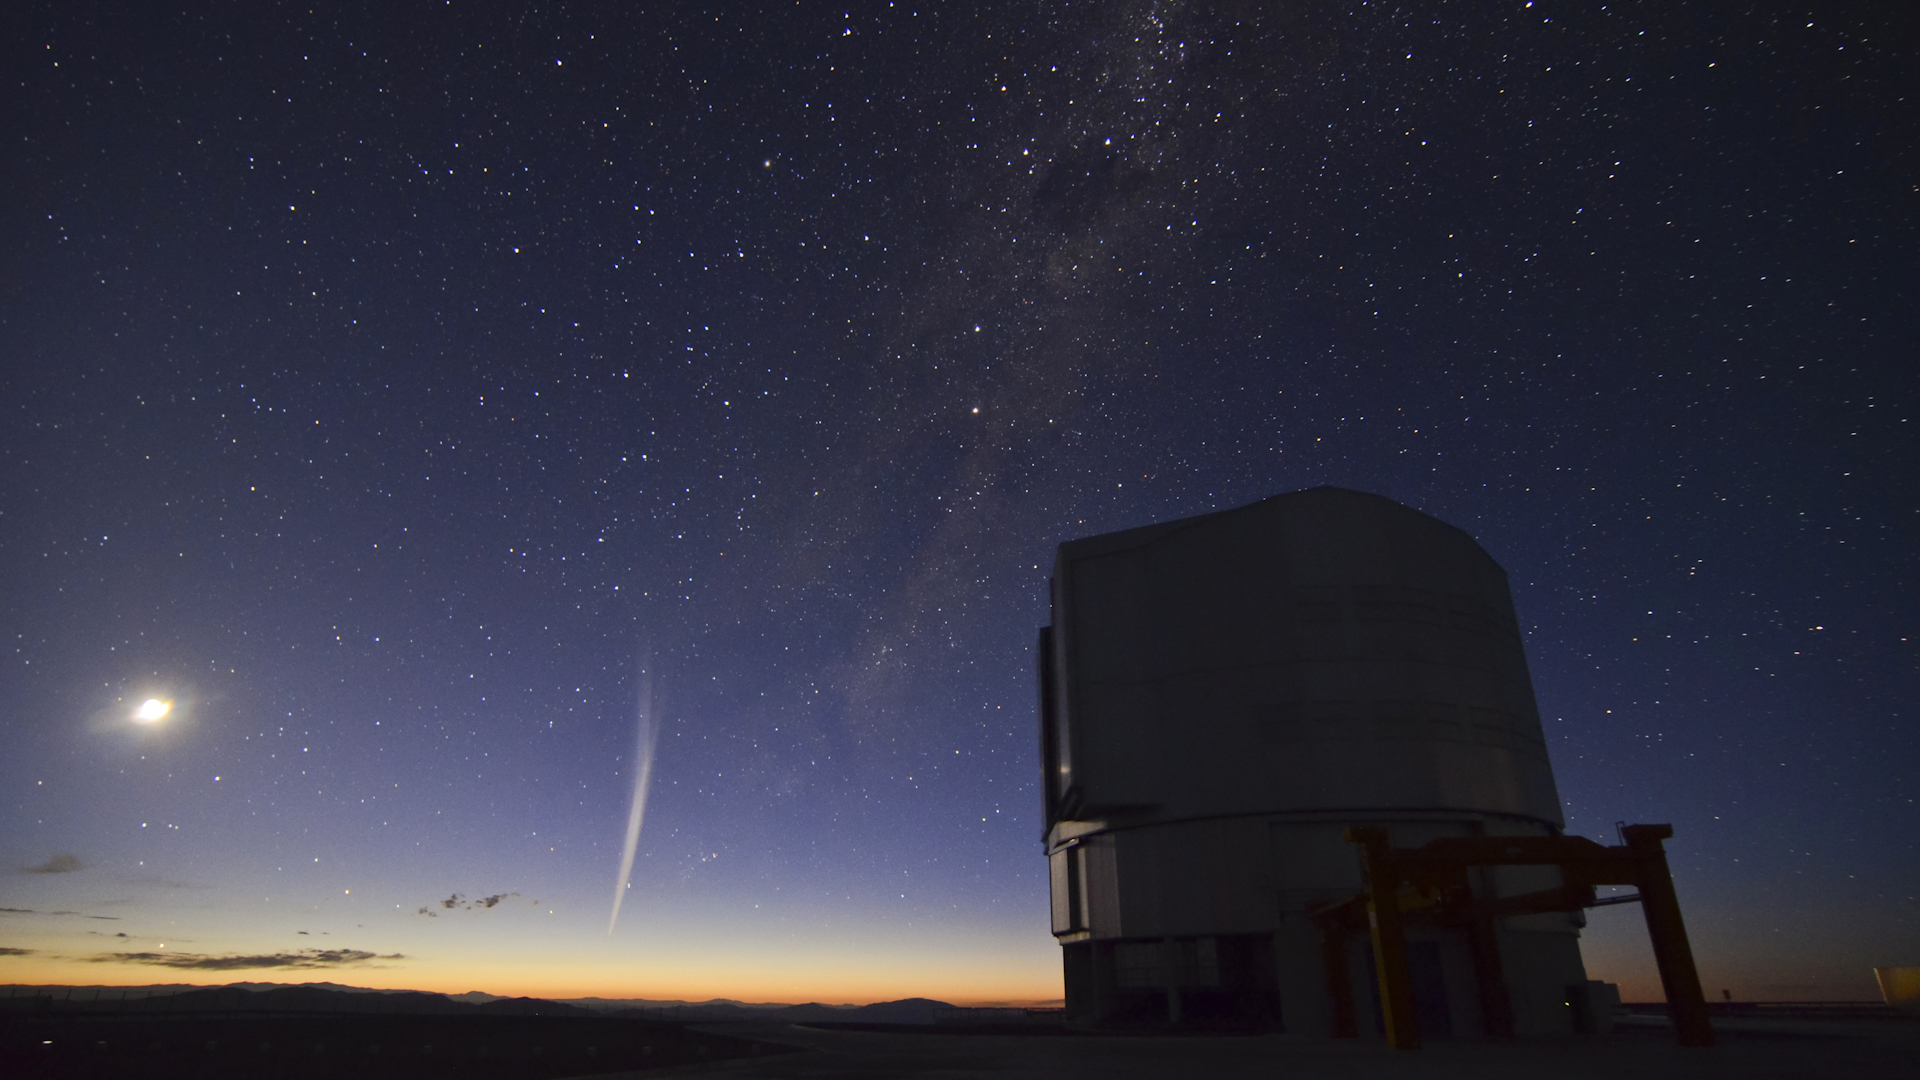 Christmas Comet Lovejoy at Paranal